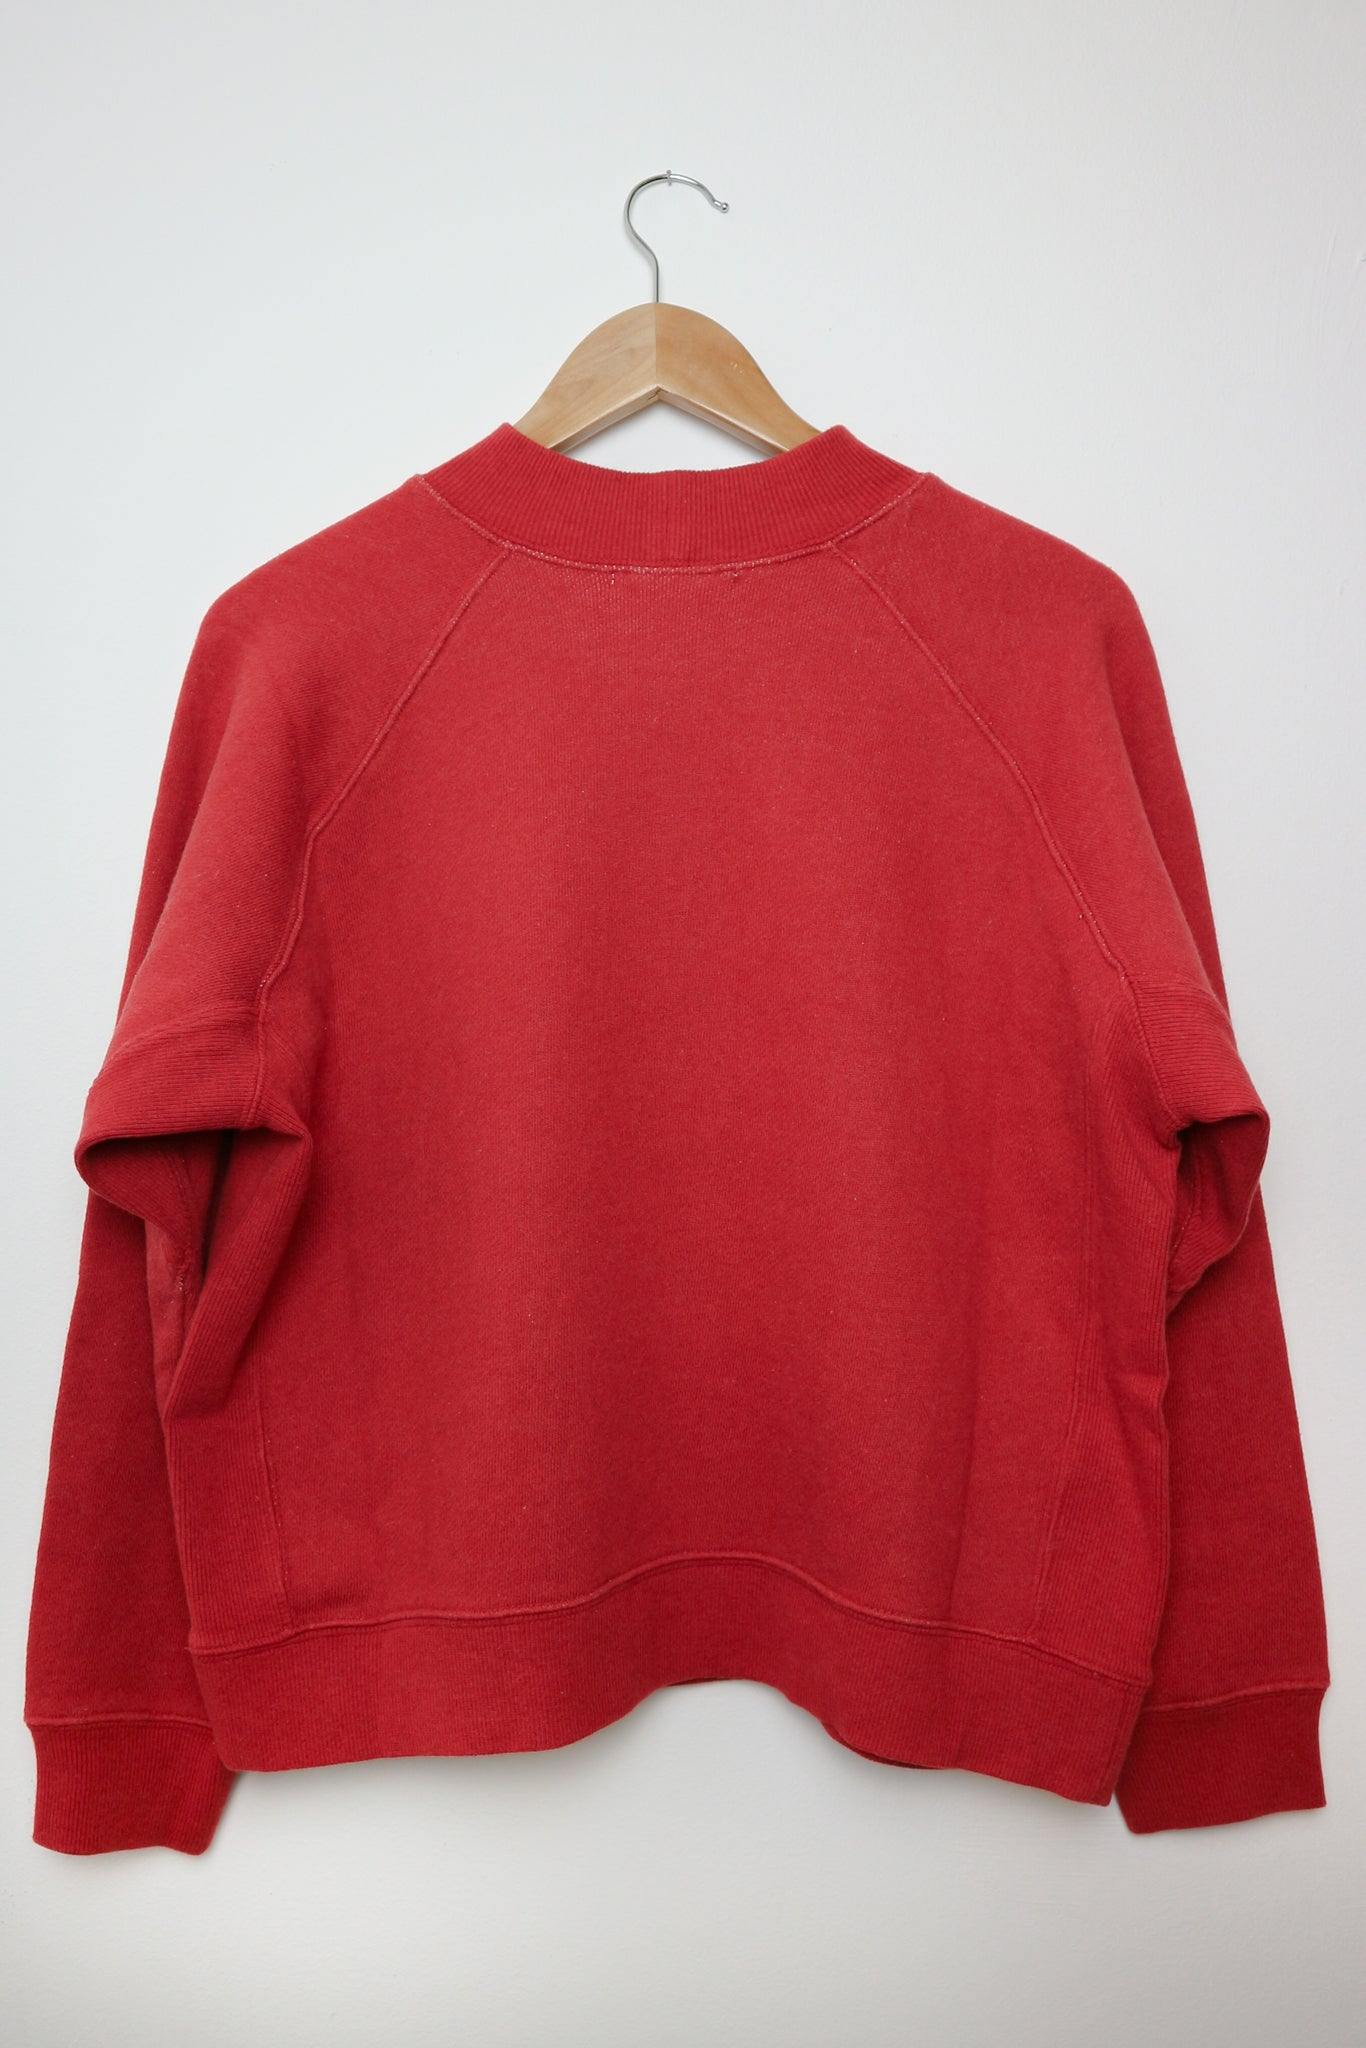 Touche Sweatshirt in Red